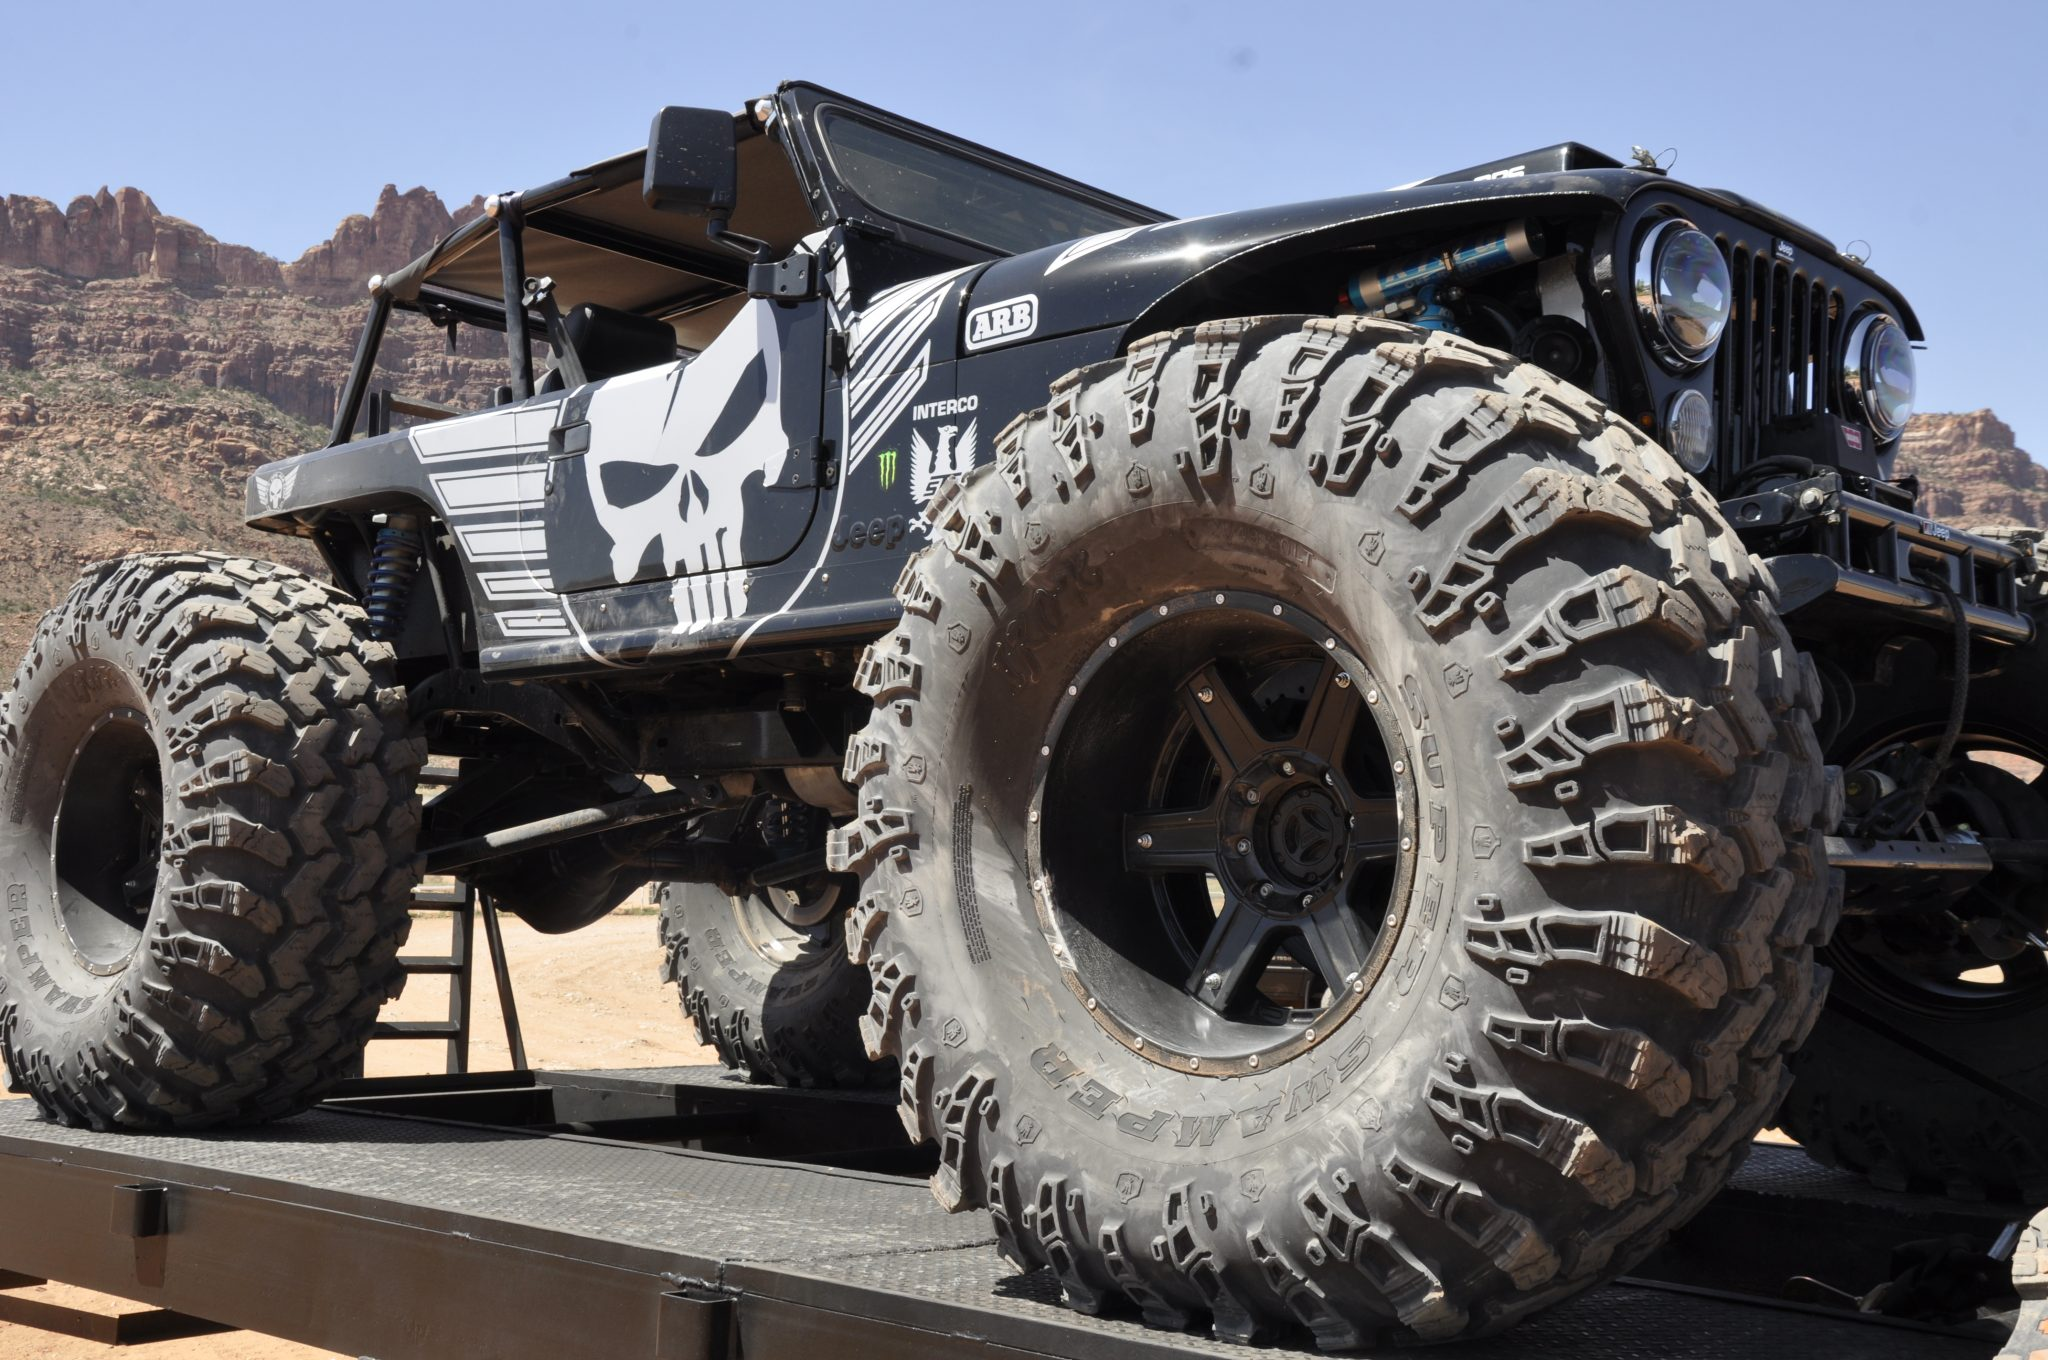 This CJ7 By Black Ops 4x4 is One Badass Jeep, And it's No ...